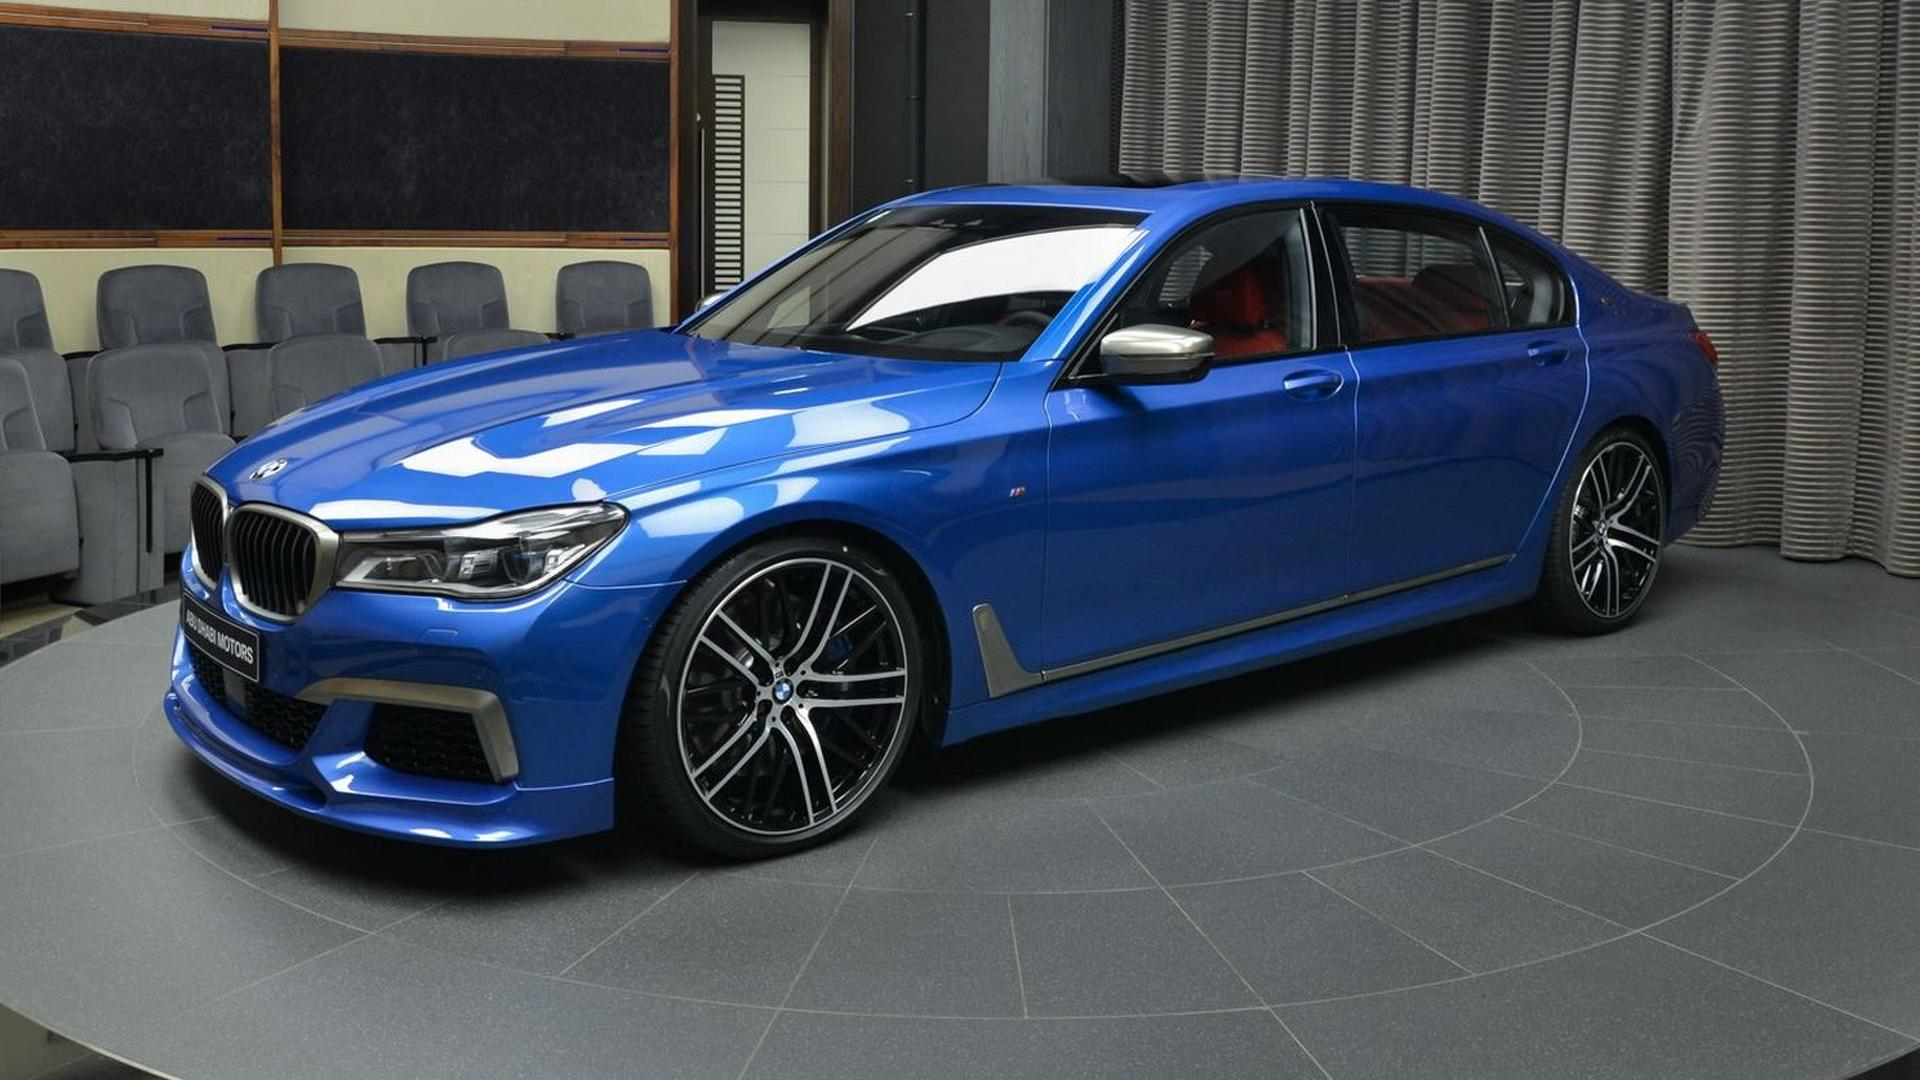 Blauer Riese Bmw M760li Xdrive In Estoril Blau